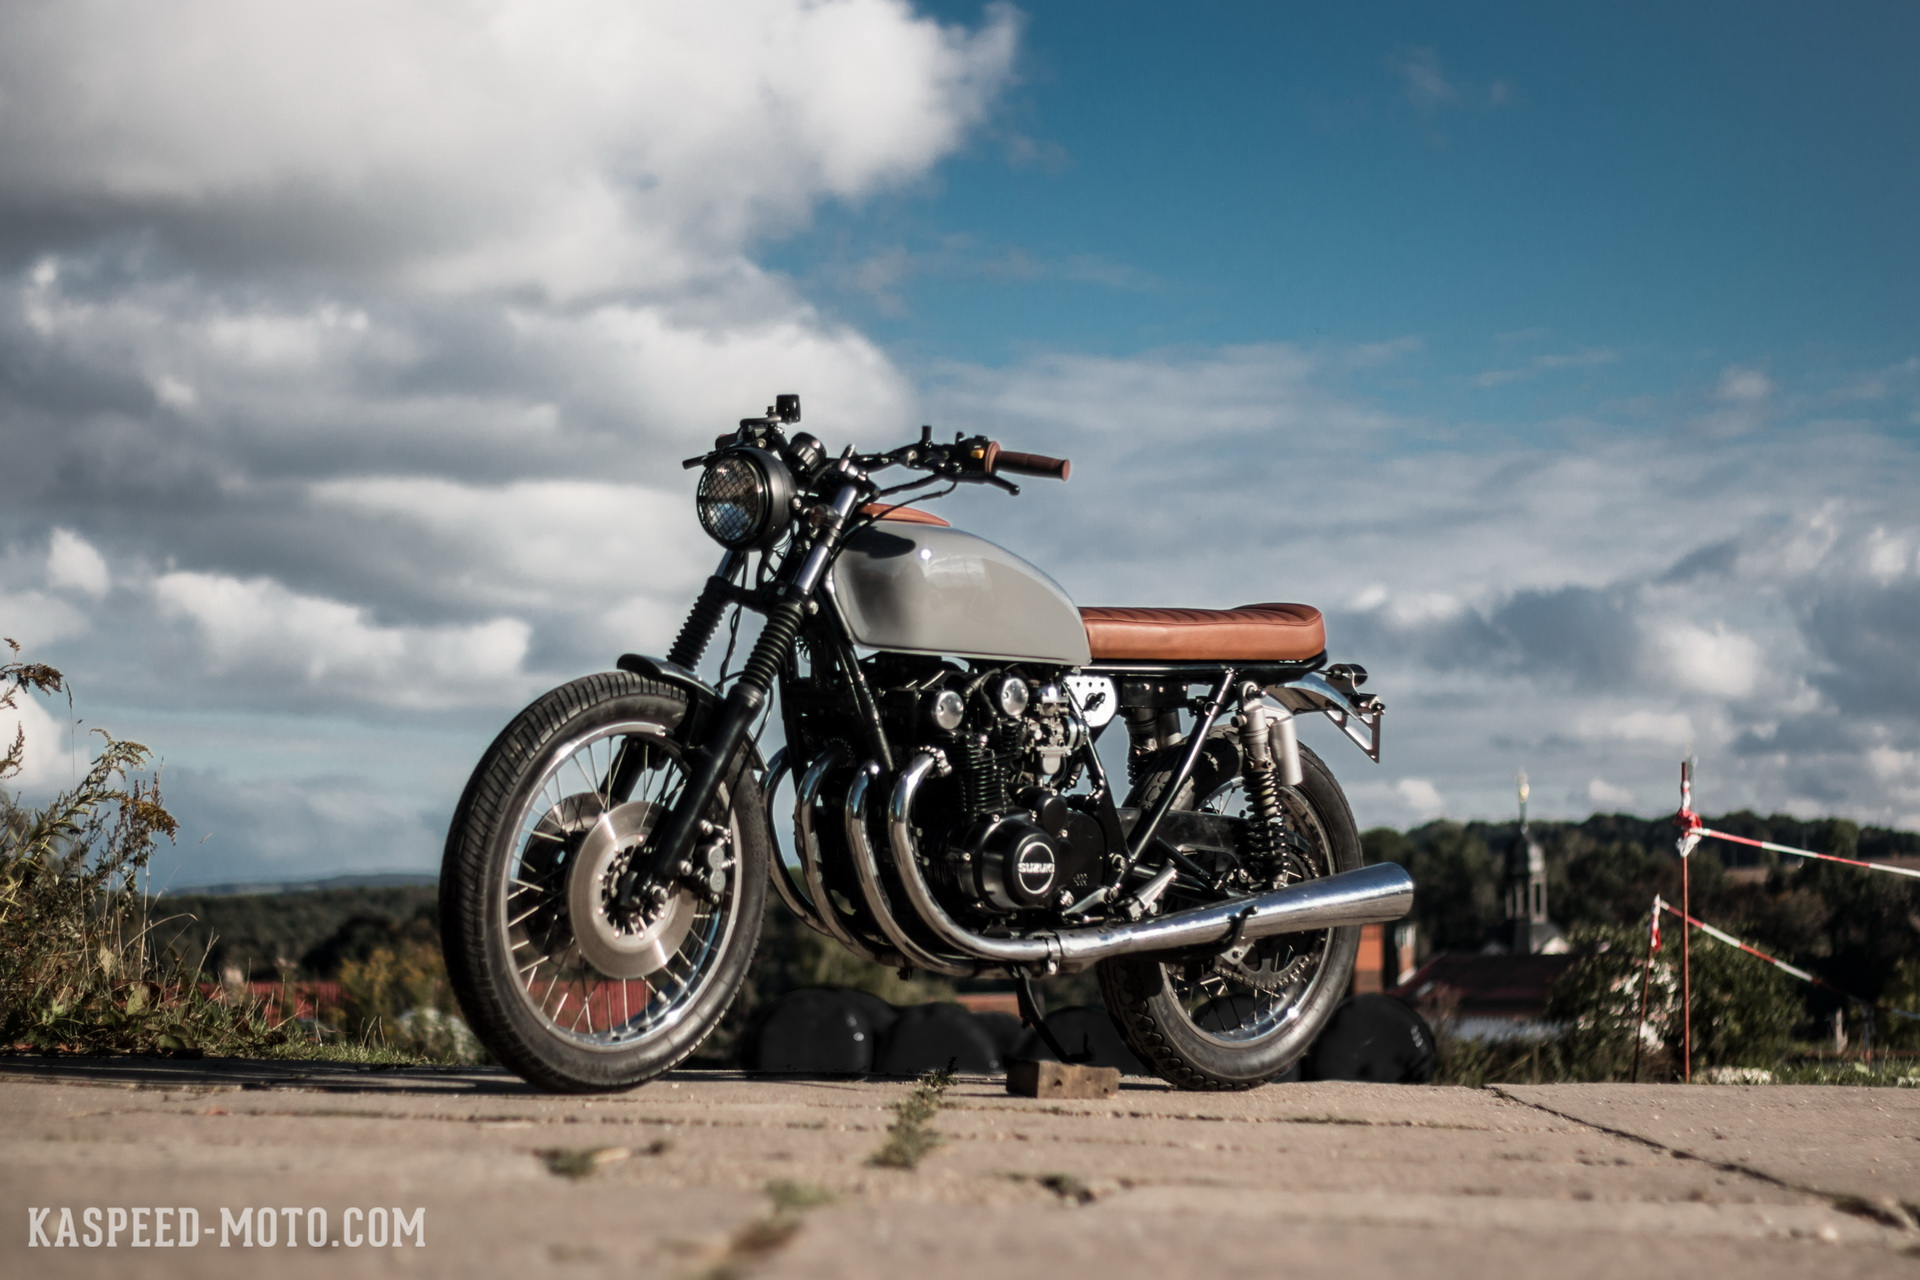 Suzuki GS550 - Kaspeed Custom Motorcycles | Cafe Racer